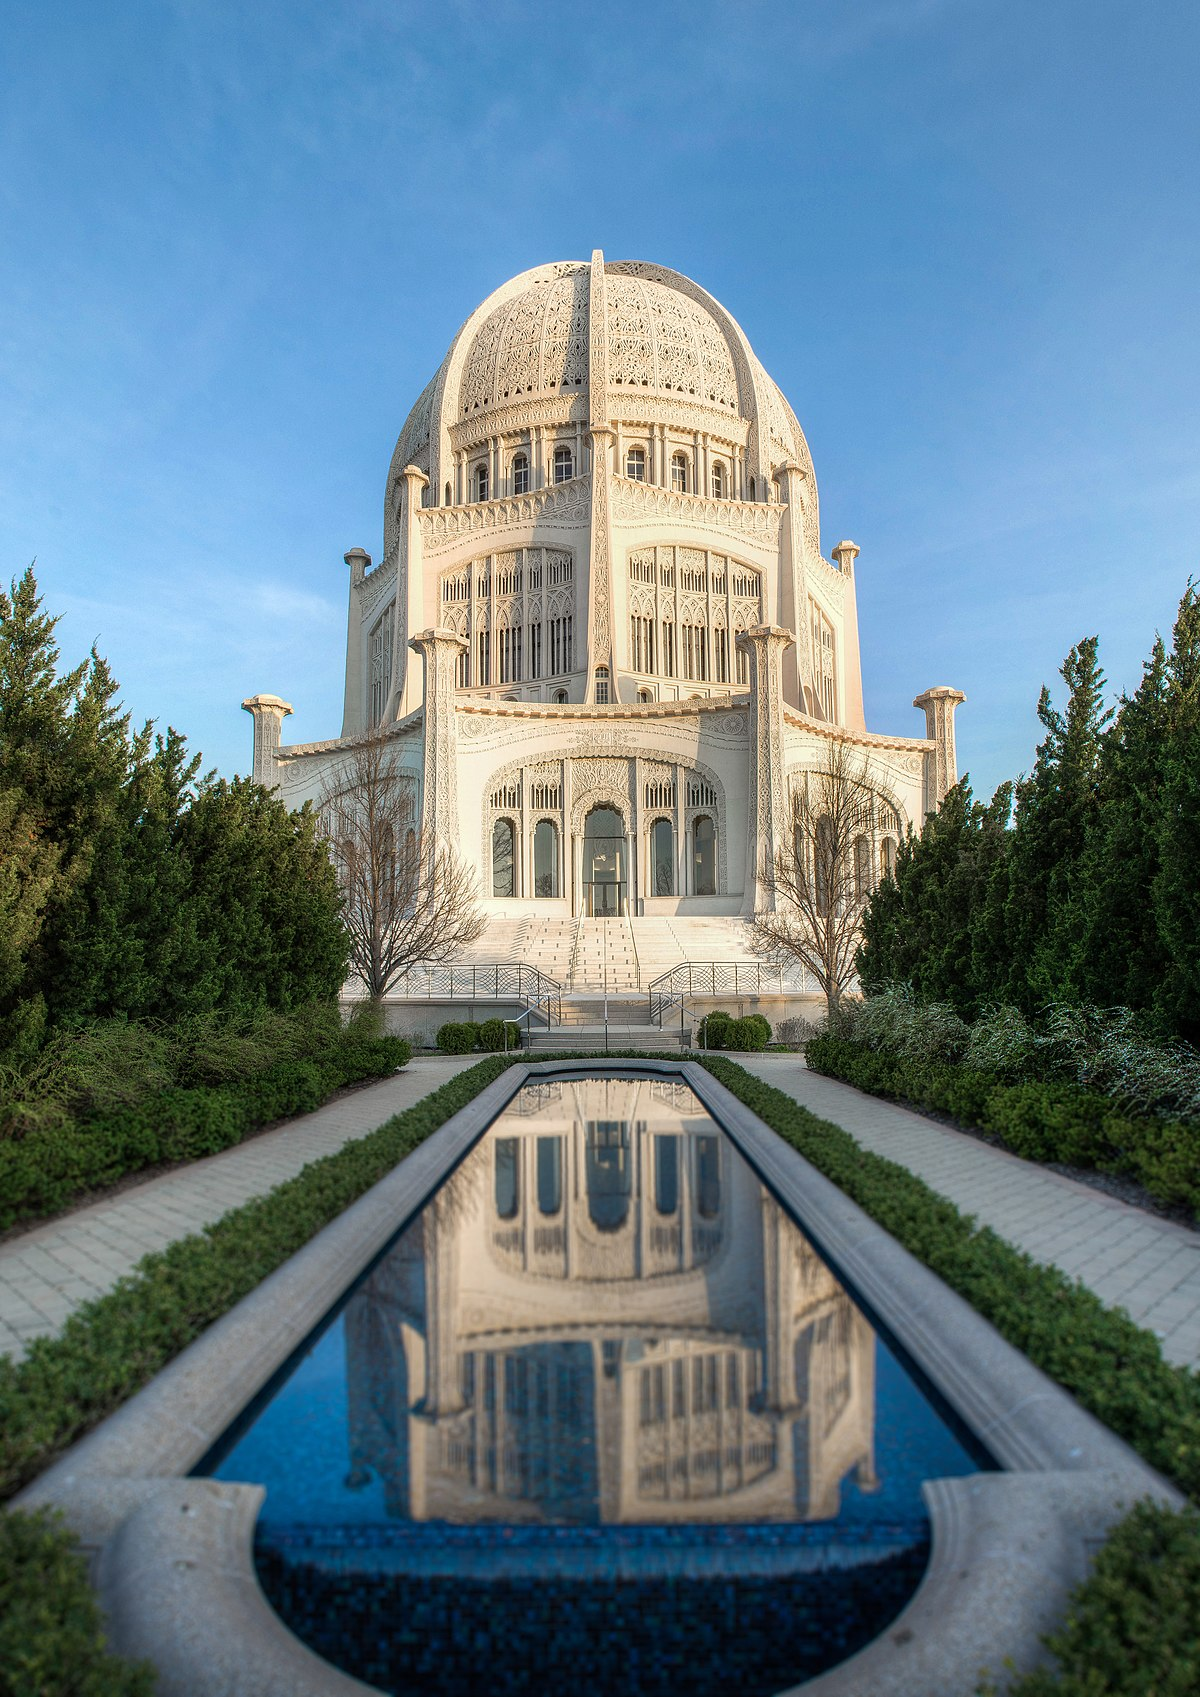 Bah House of Worship Wilmette Illinois   Wikipedia 1200x1697